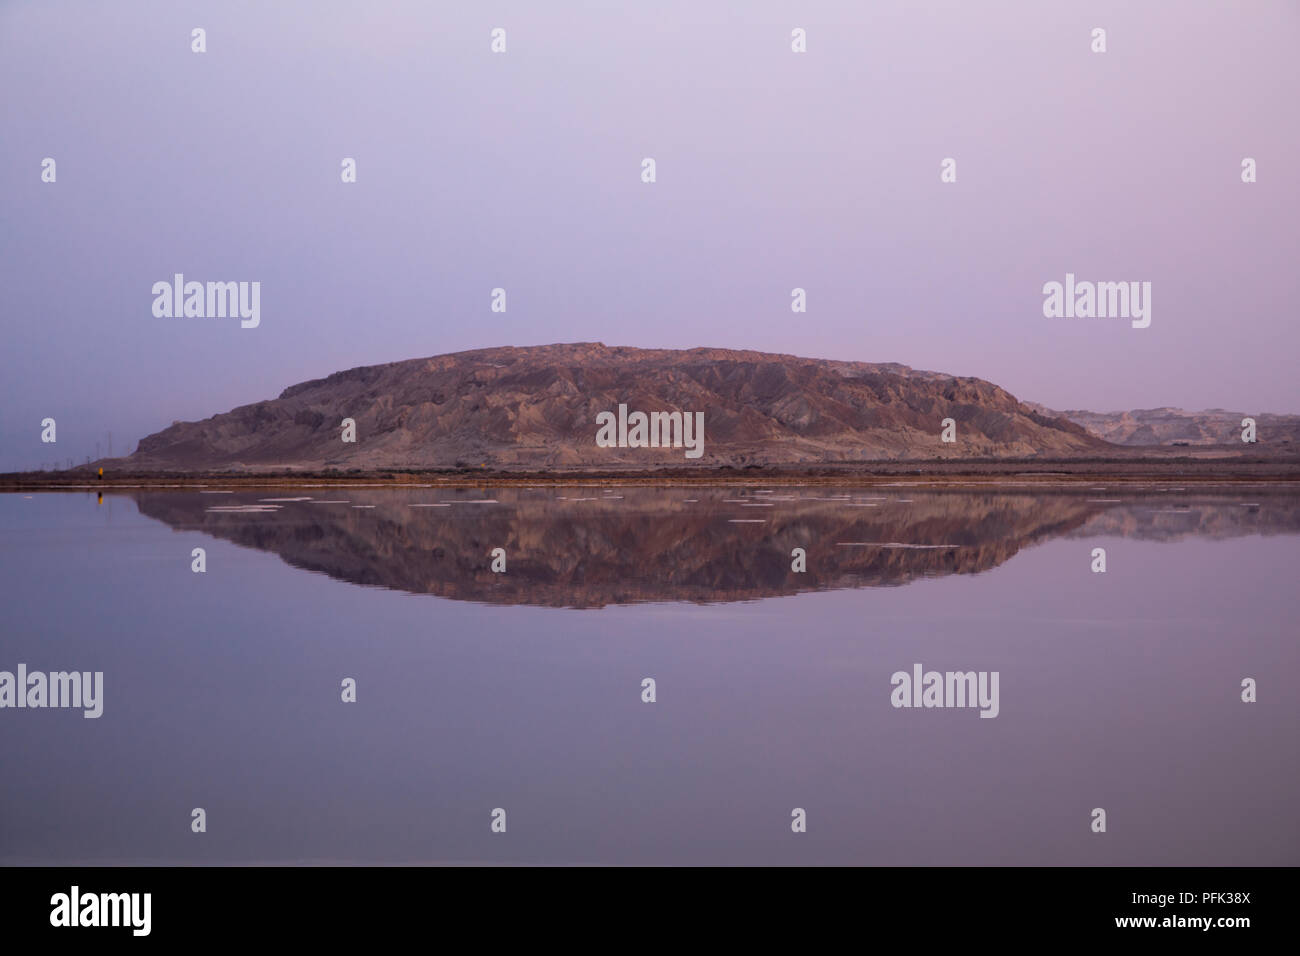 Large Rock Rising From the Dead Sea, Tranquil reflection During a Pink Twilight, Ein Bokek, Israel - Stock Image